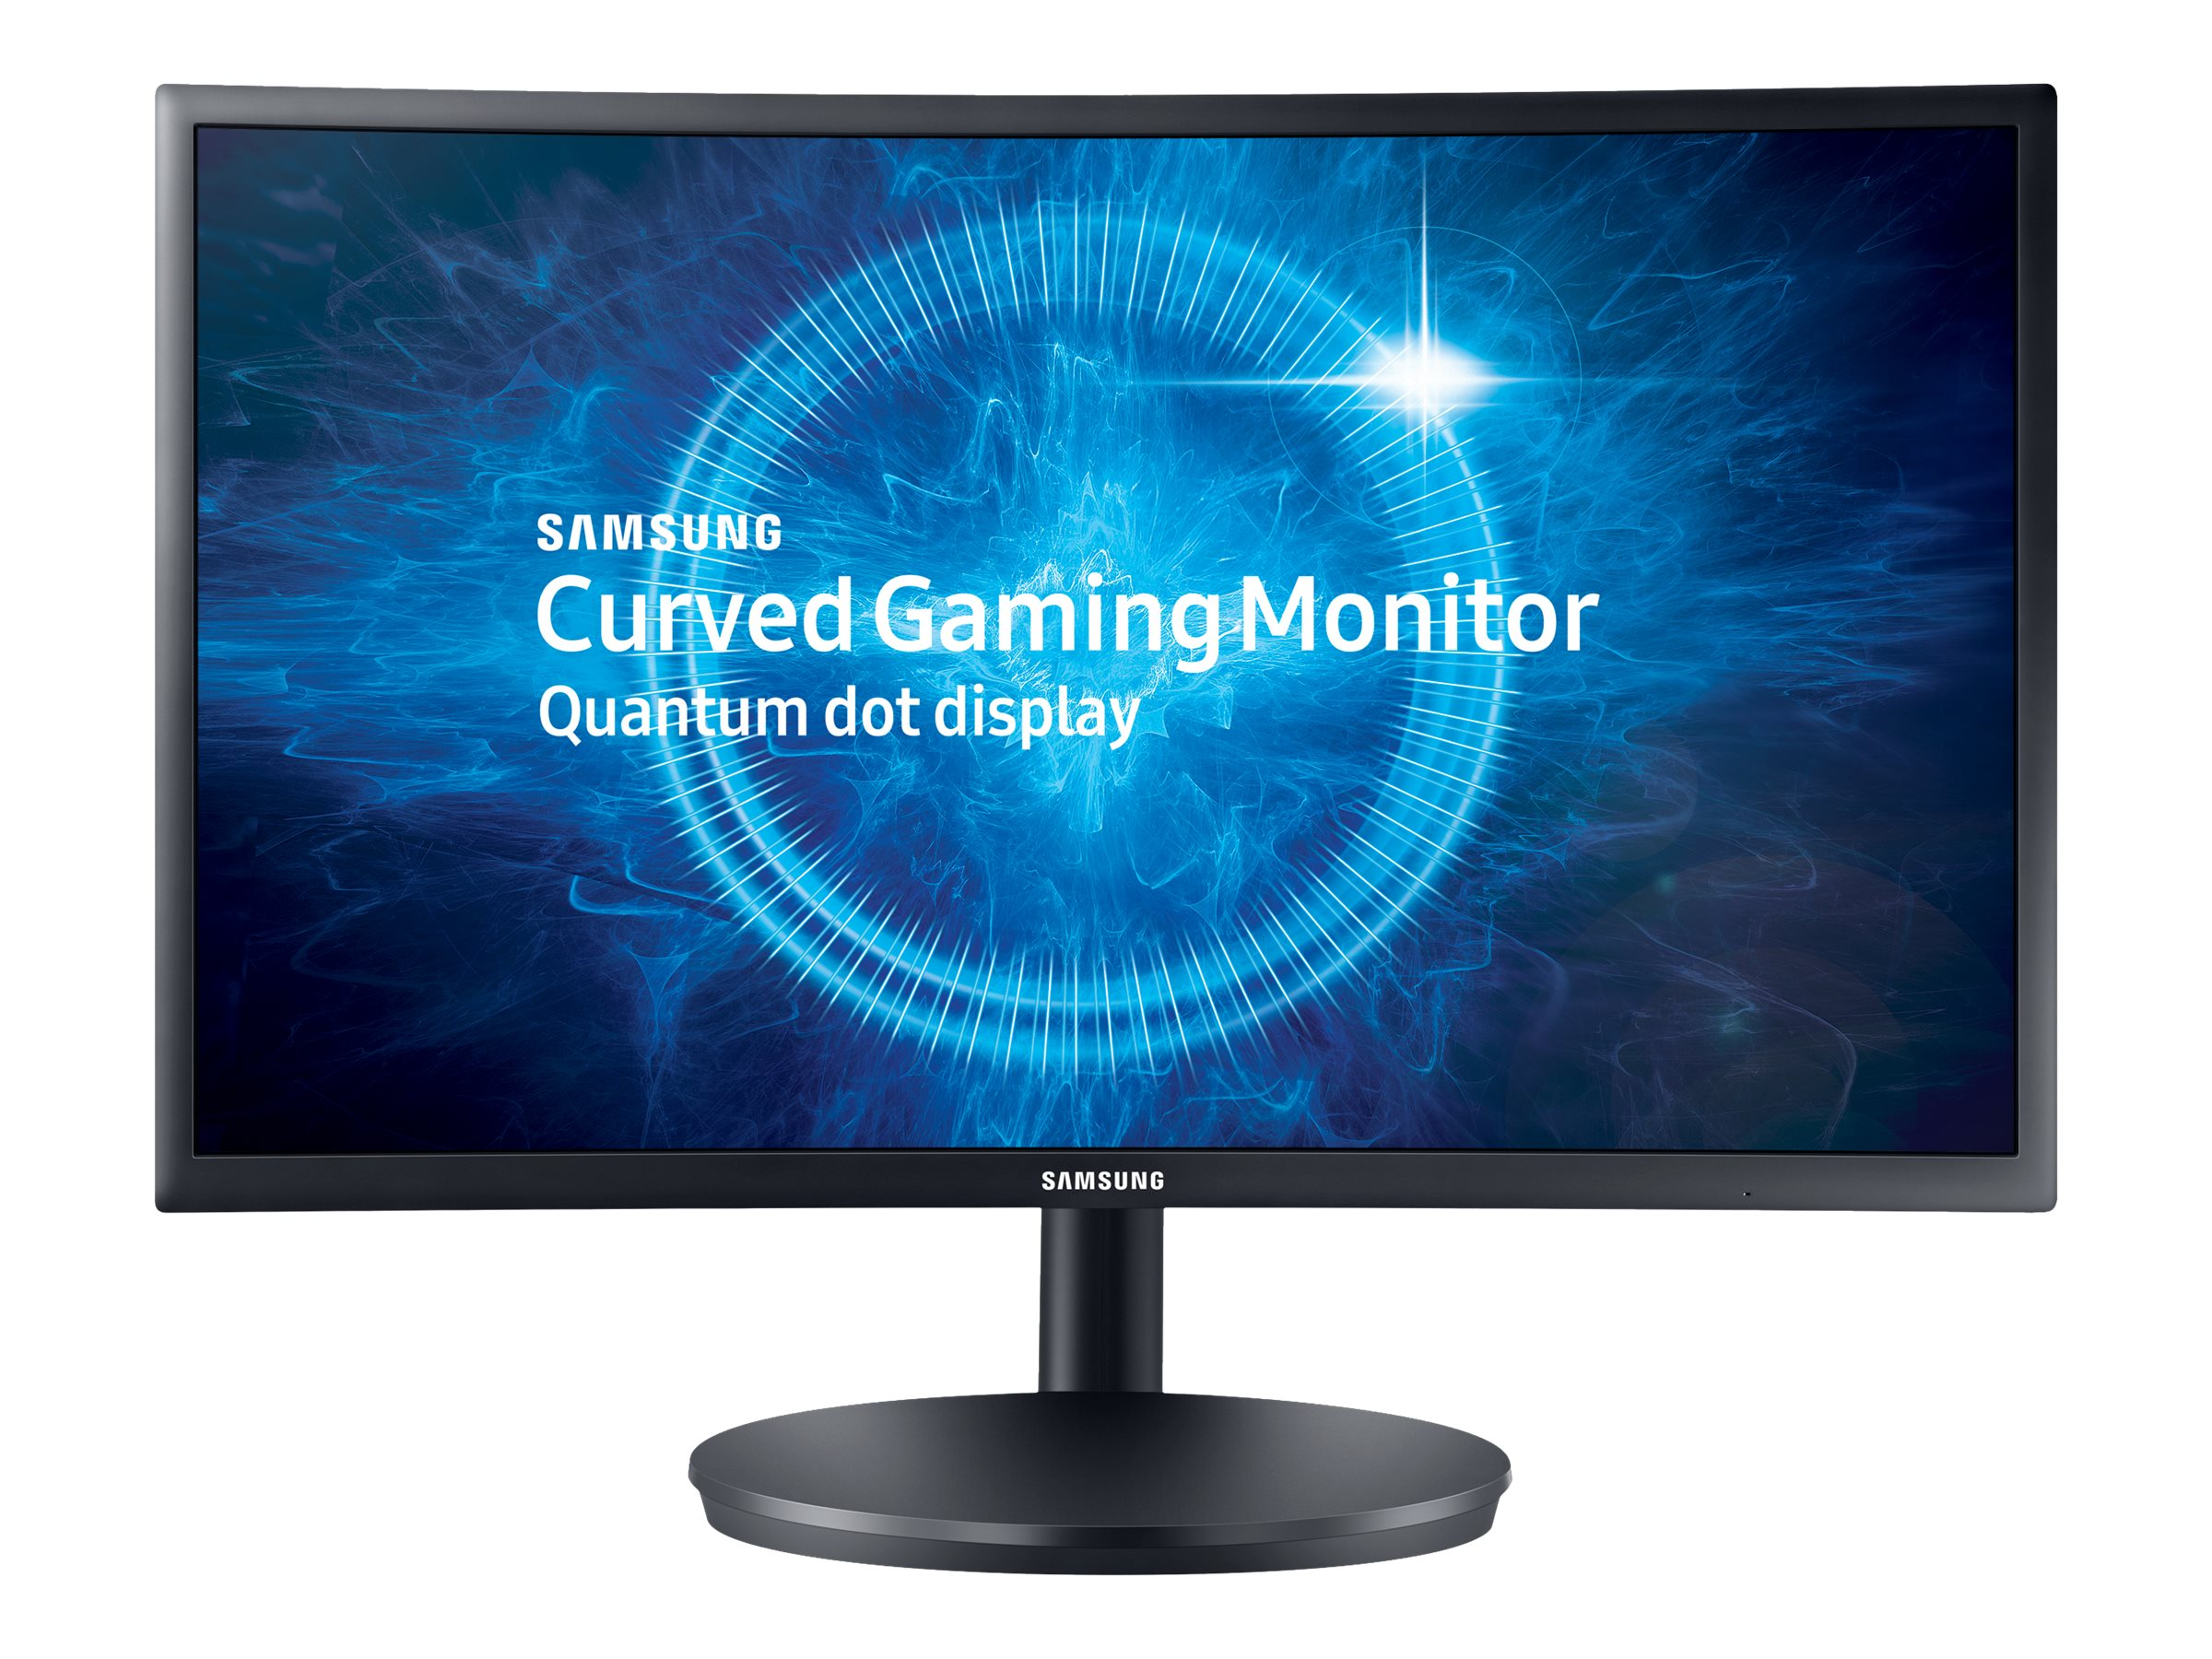 Samsung 24 CFG70 Full HD LED Curved Gaming Monitor, Black